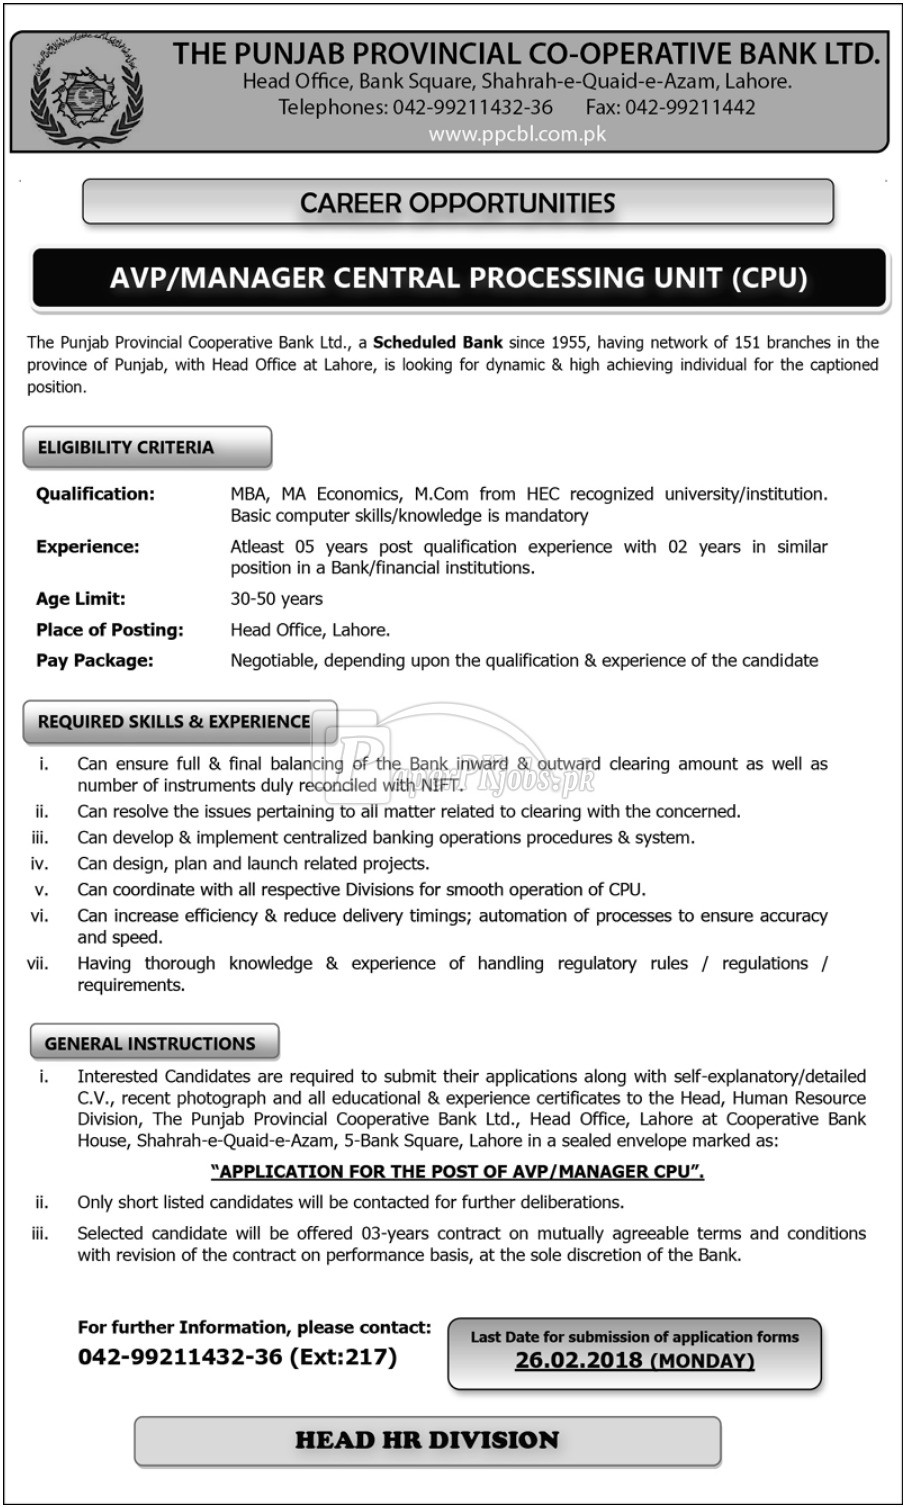 The Punjab Provincial Cooperative Bank Ltd. Jobs 2018